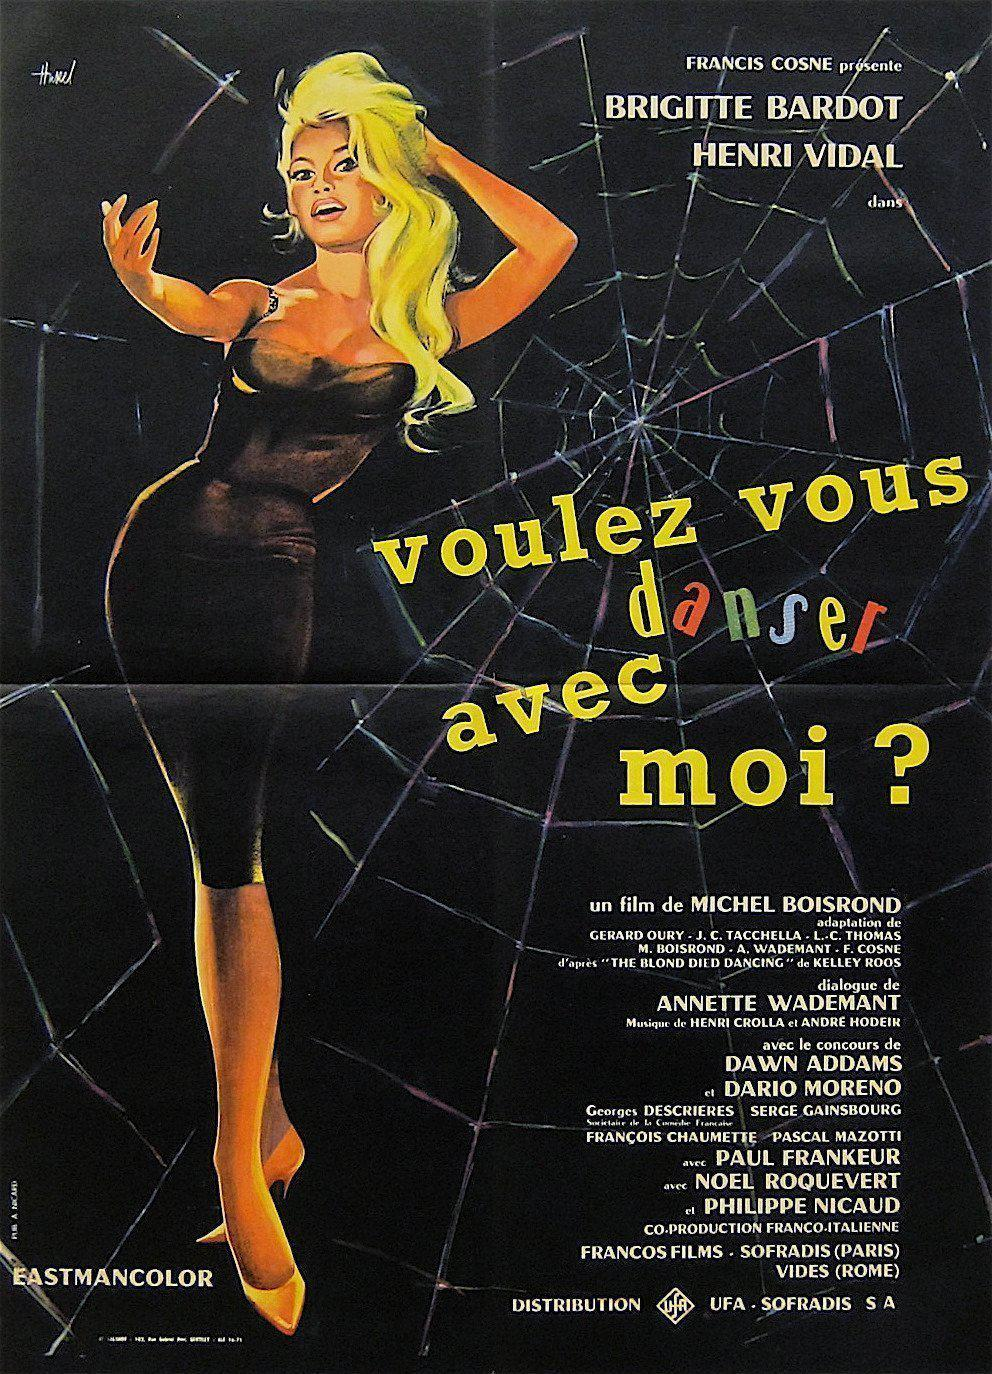 Come Dance with Me (Voulez-Vous Danser Avec Moi) French small (23x32) Original Vintage Movie Poster